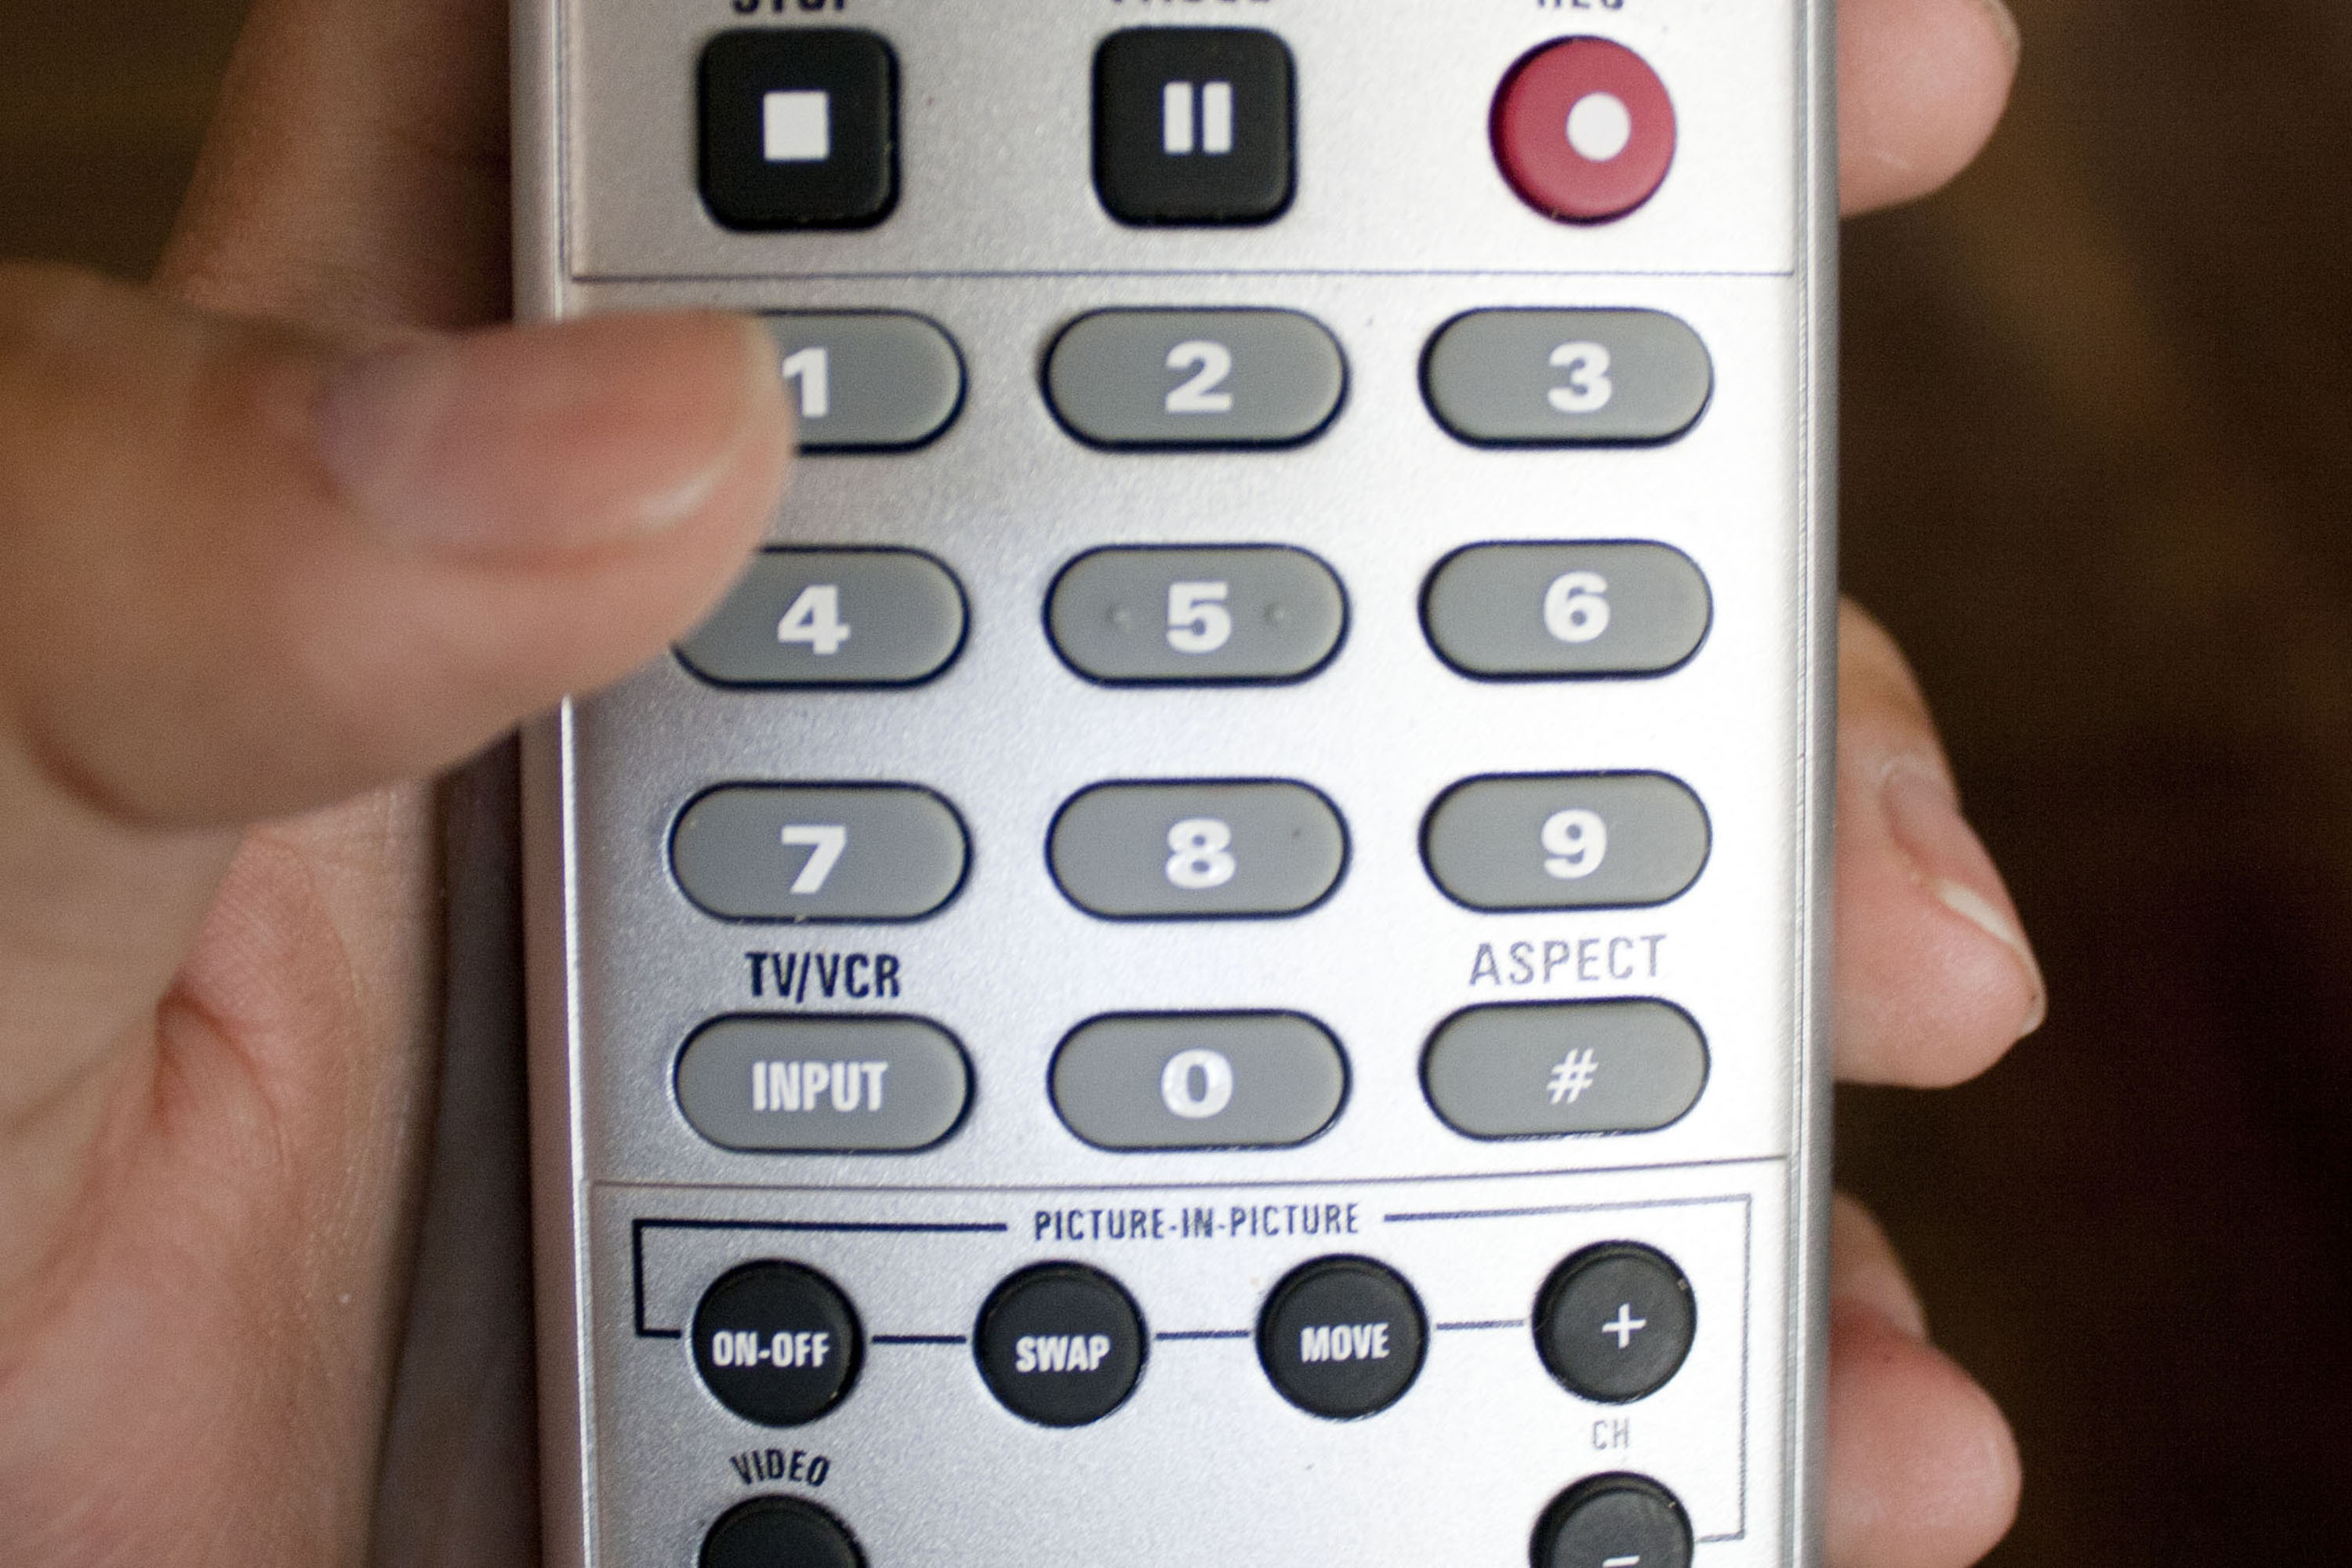 How to Connect a Remote to a TV | It Still Works